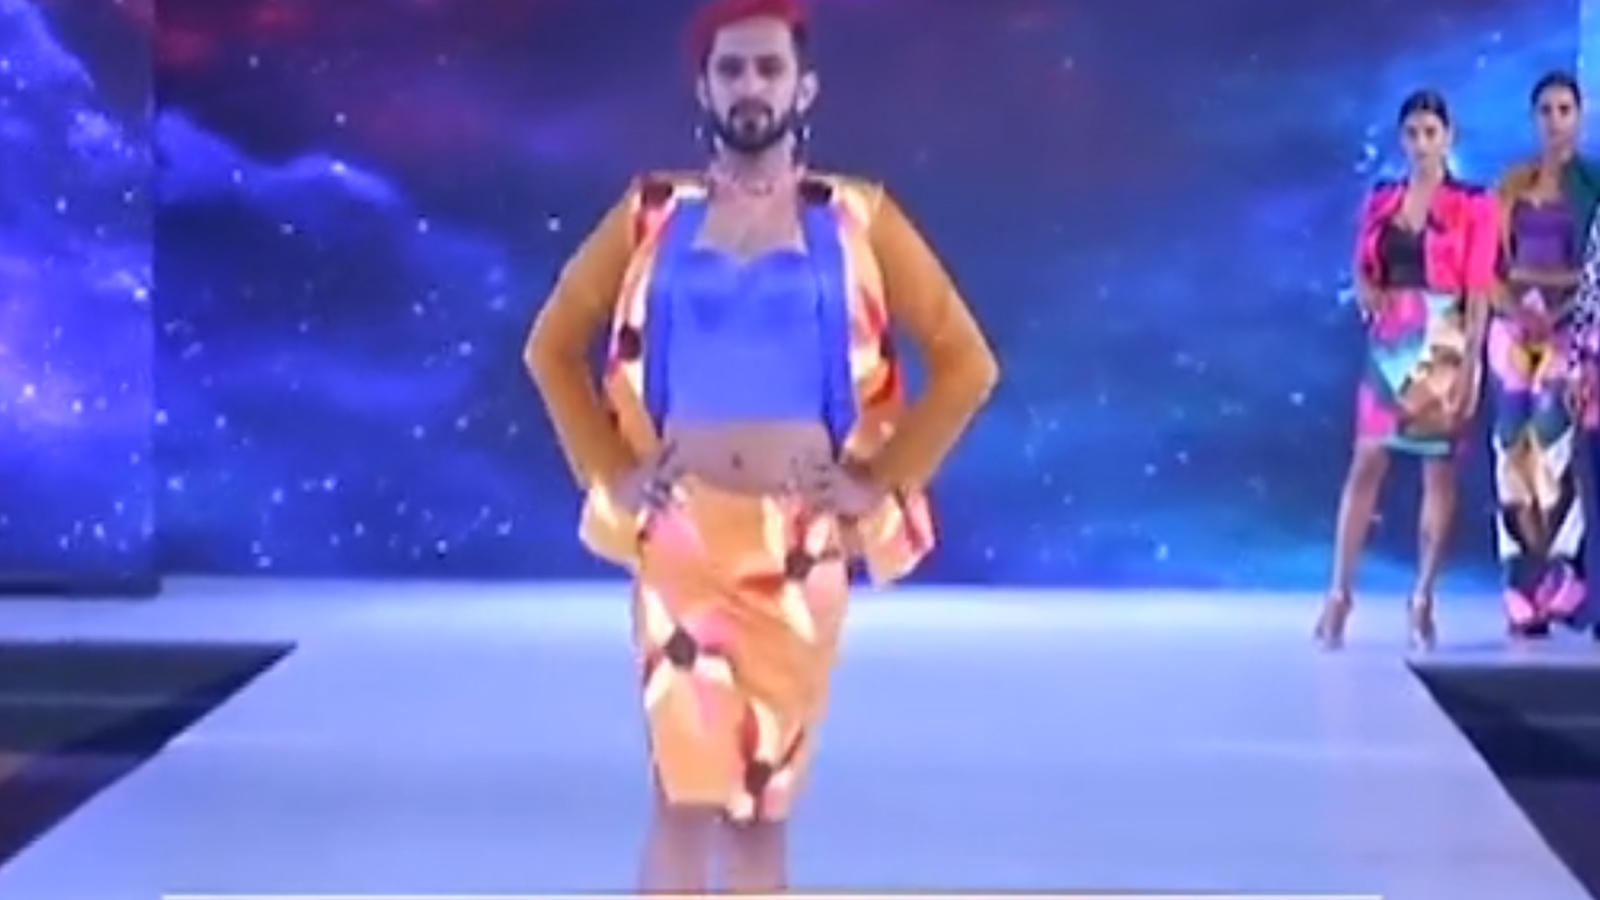 Showcasing Jd Institute Of Fashion Technology At Btwf 2019 Lifestyle Times Of India Videos